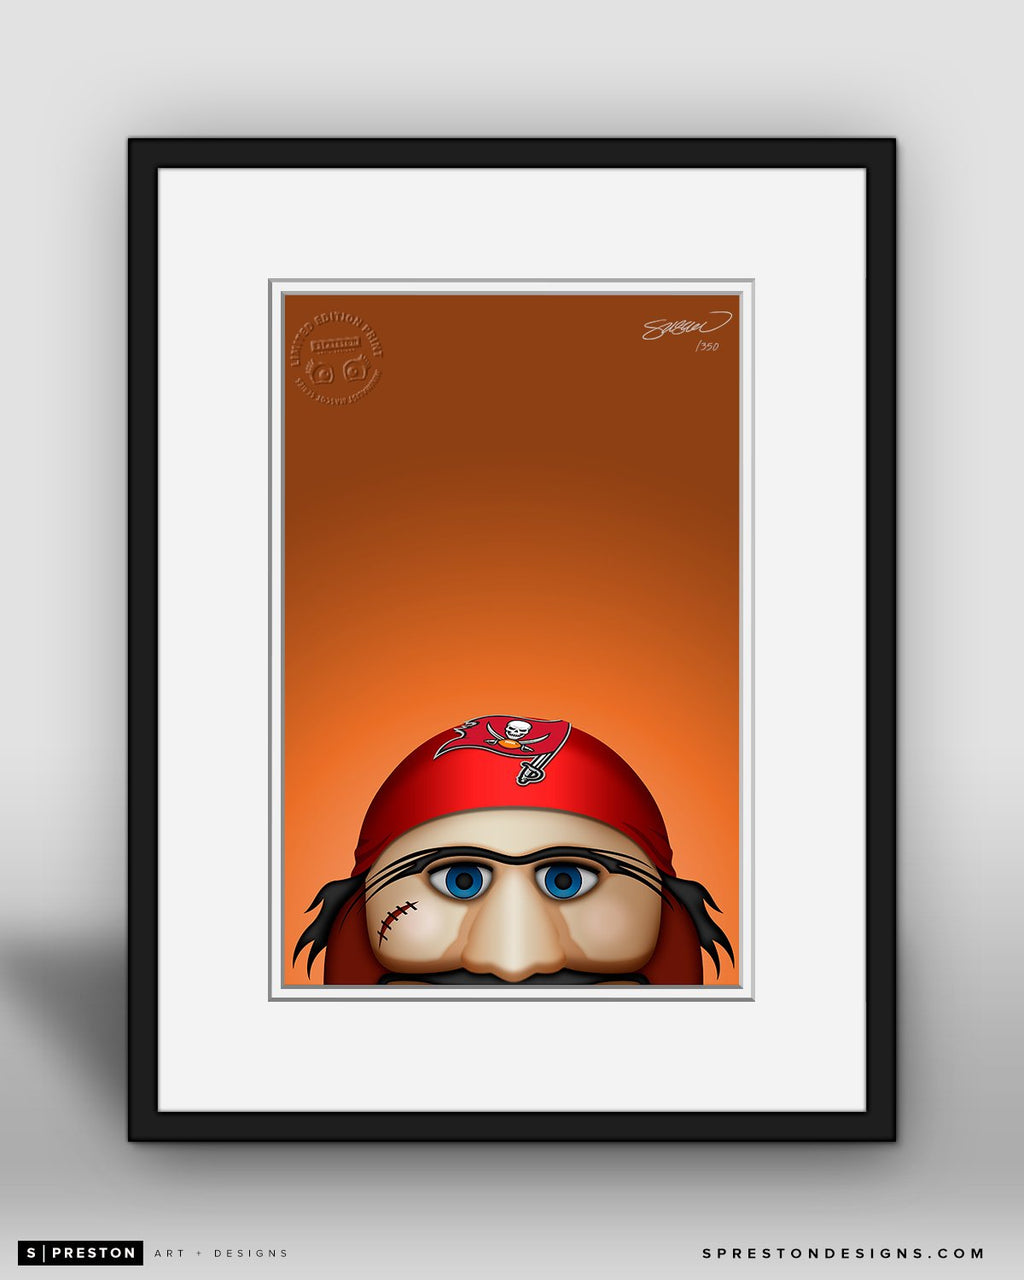 Minimalist Captain Fear - Tampa Bay Buccaneers - S. Preston